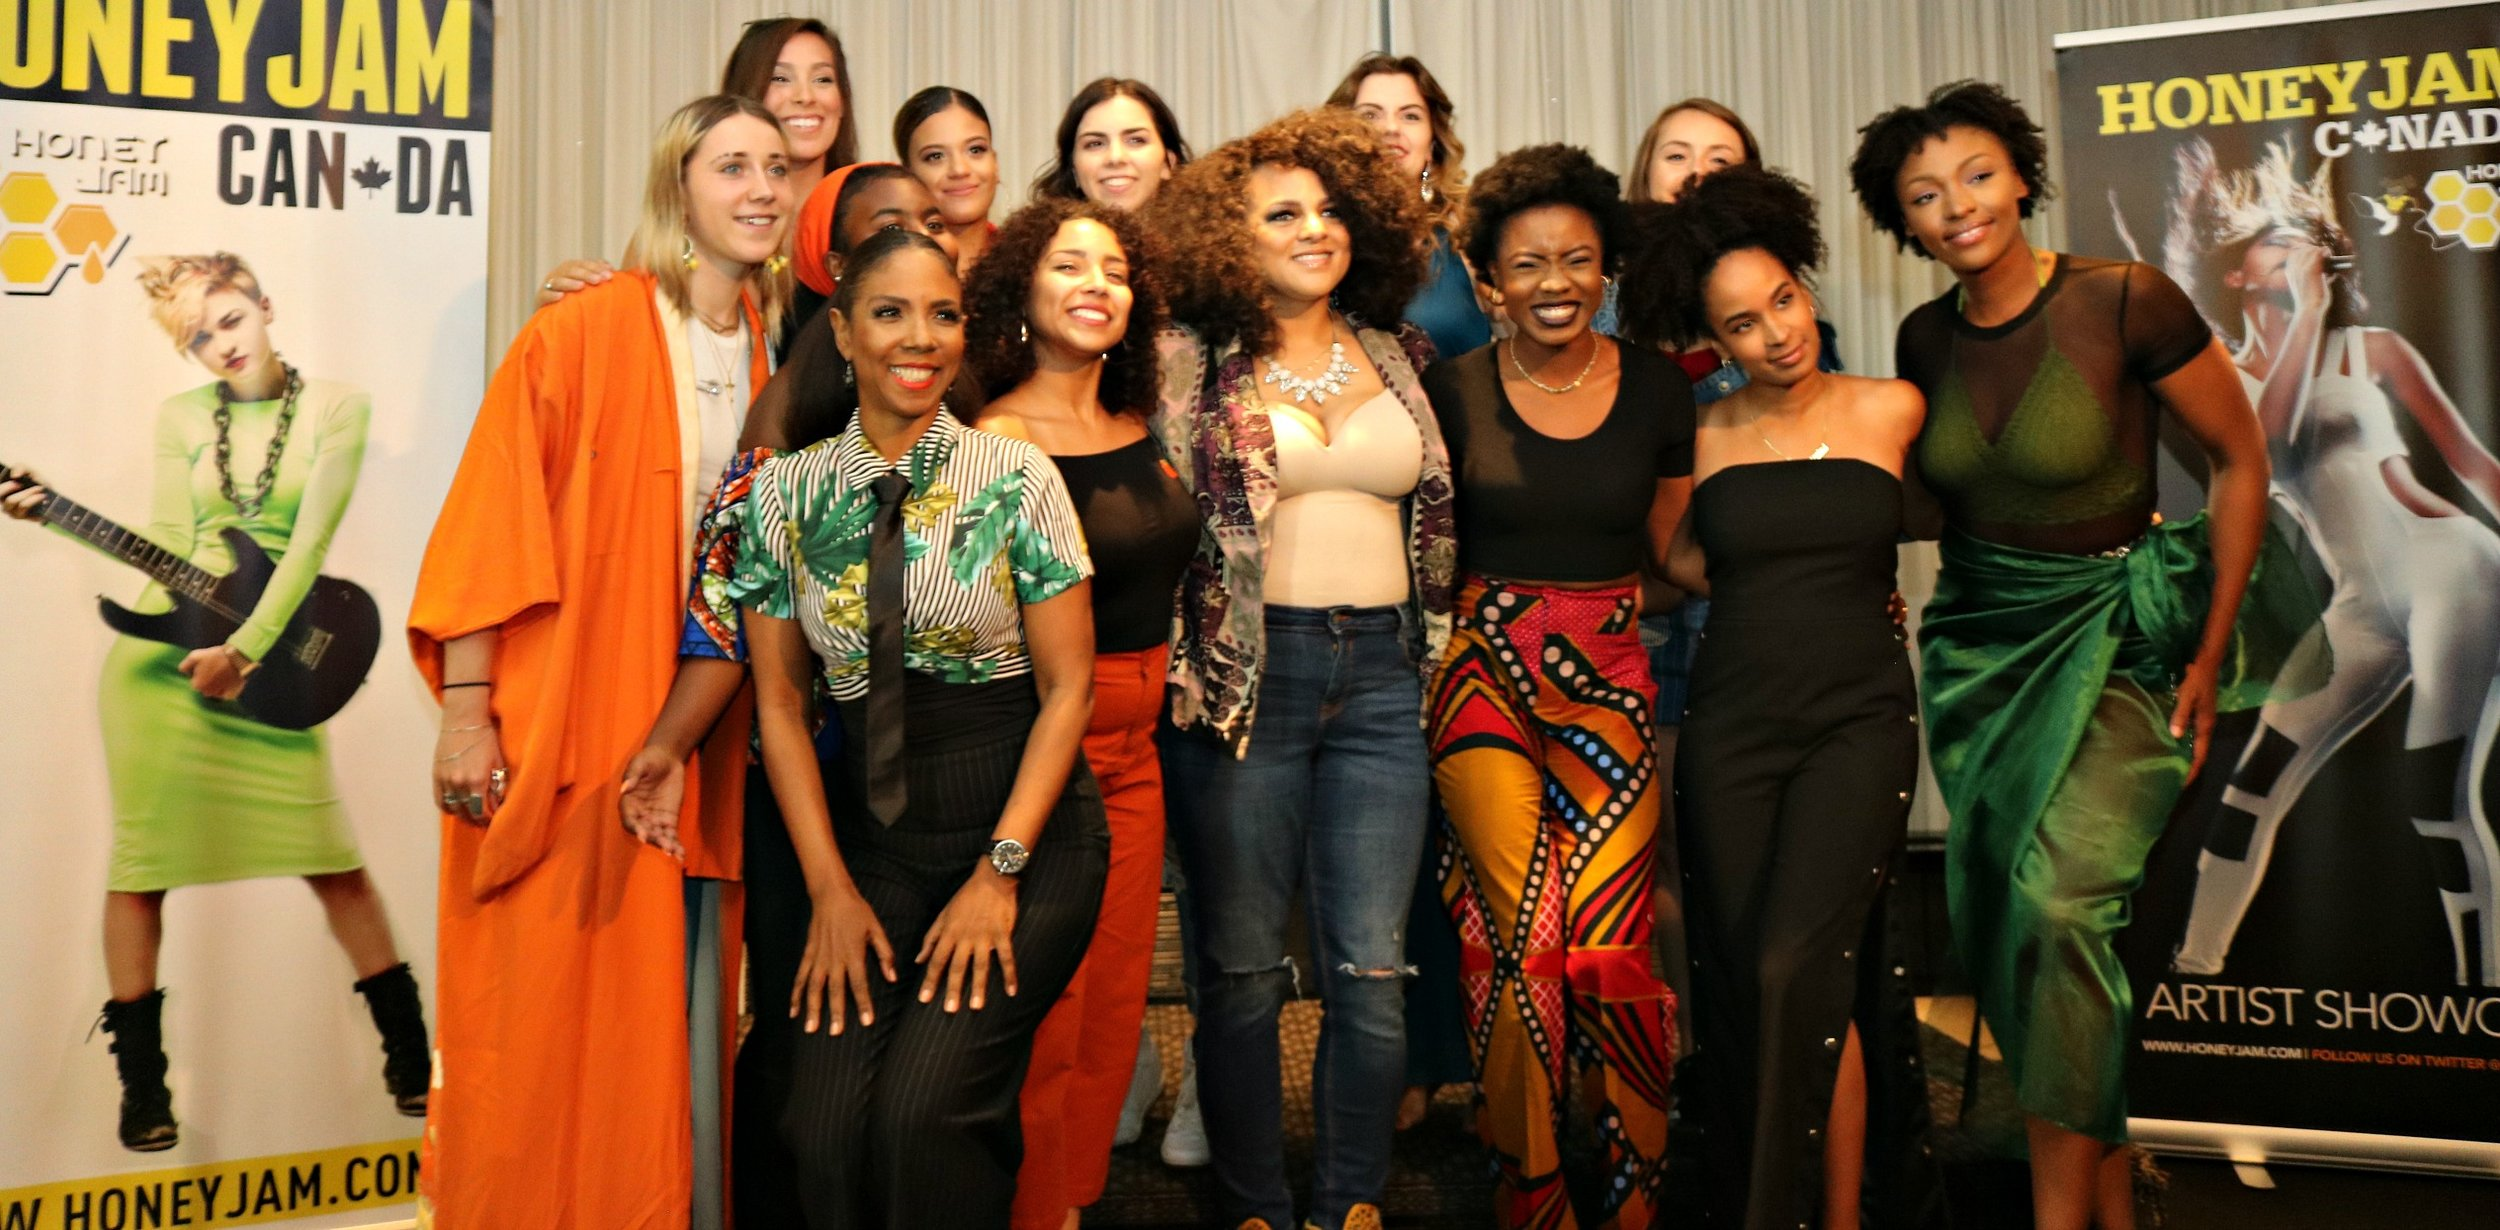 Marsha Ambrosius (c) and Ebonnie Rowe (with tie) with some of the Honey Jam participants